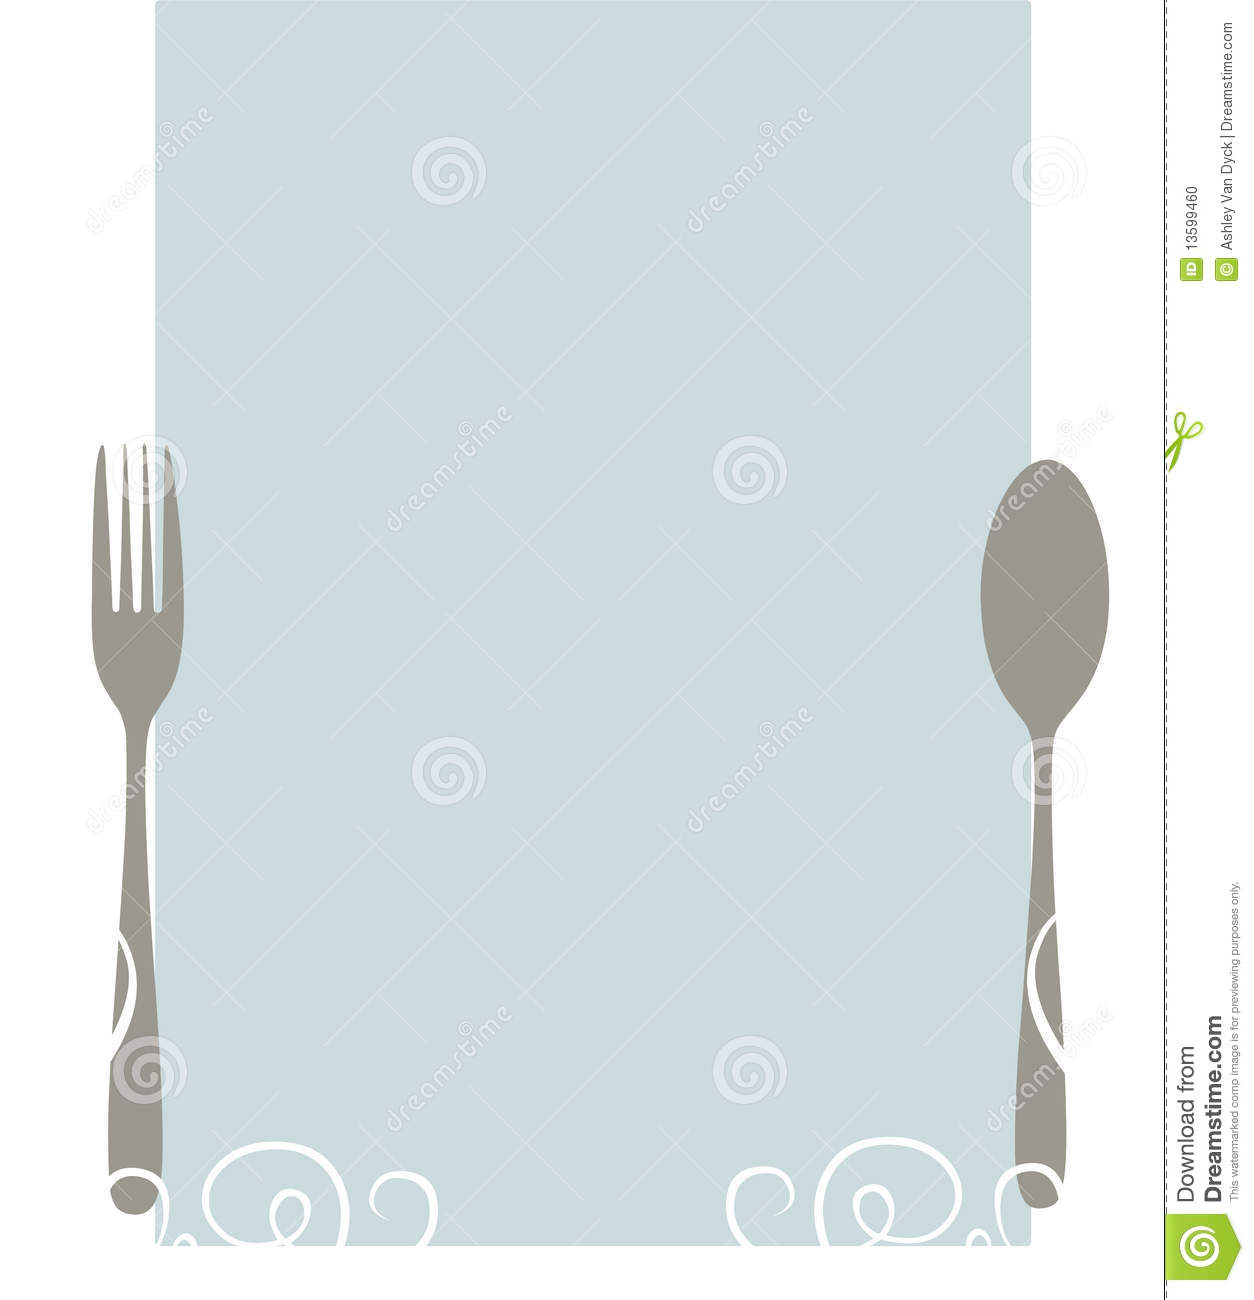 Elegant blank menu stock vector. Illustration of elegant - 13599460